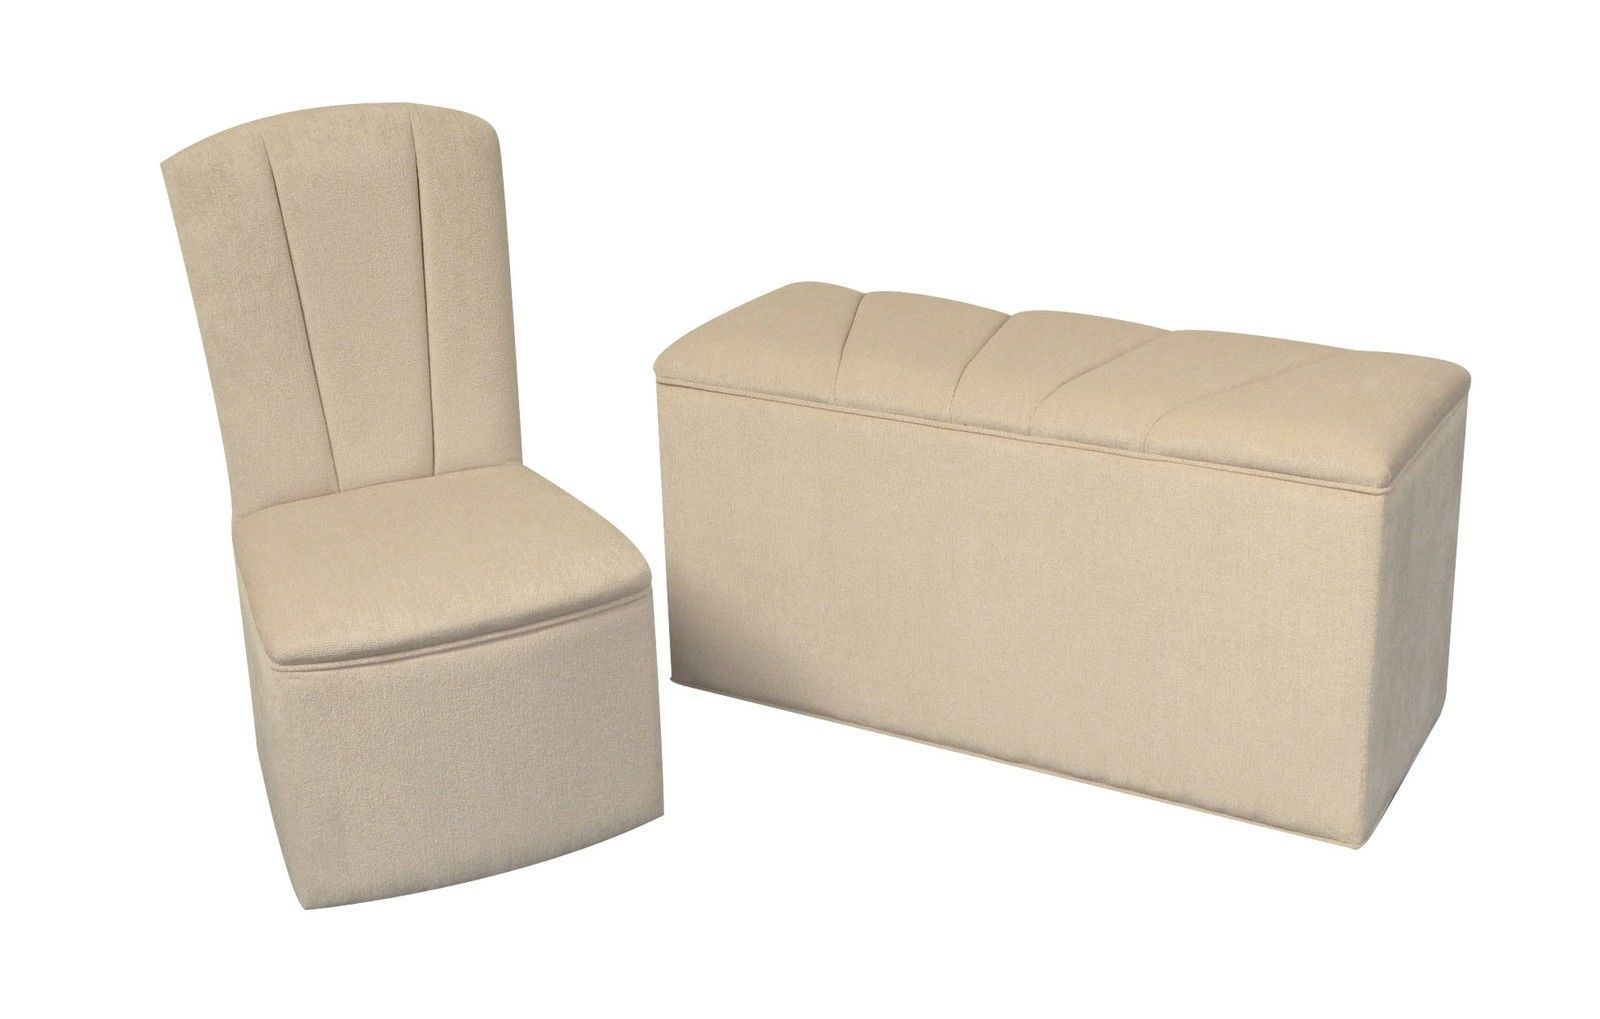 Designer Bedroom Chair/Ottoman Set In Light Beige Chenille